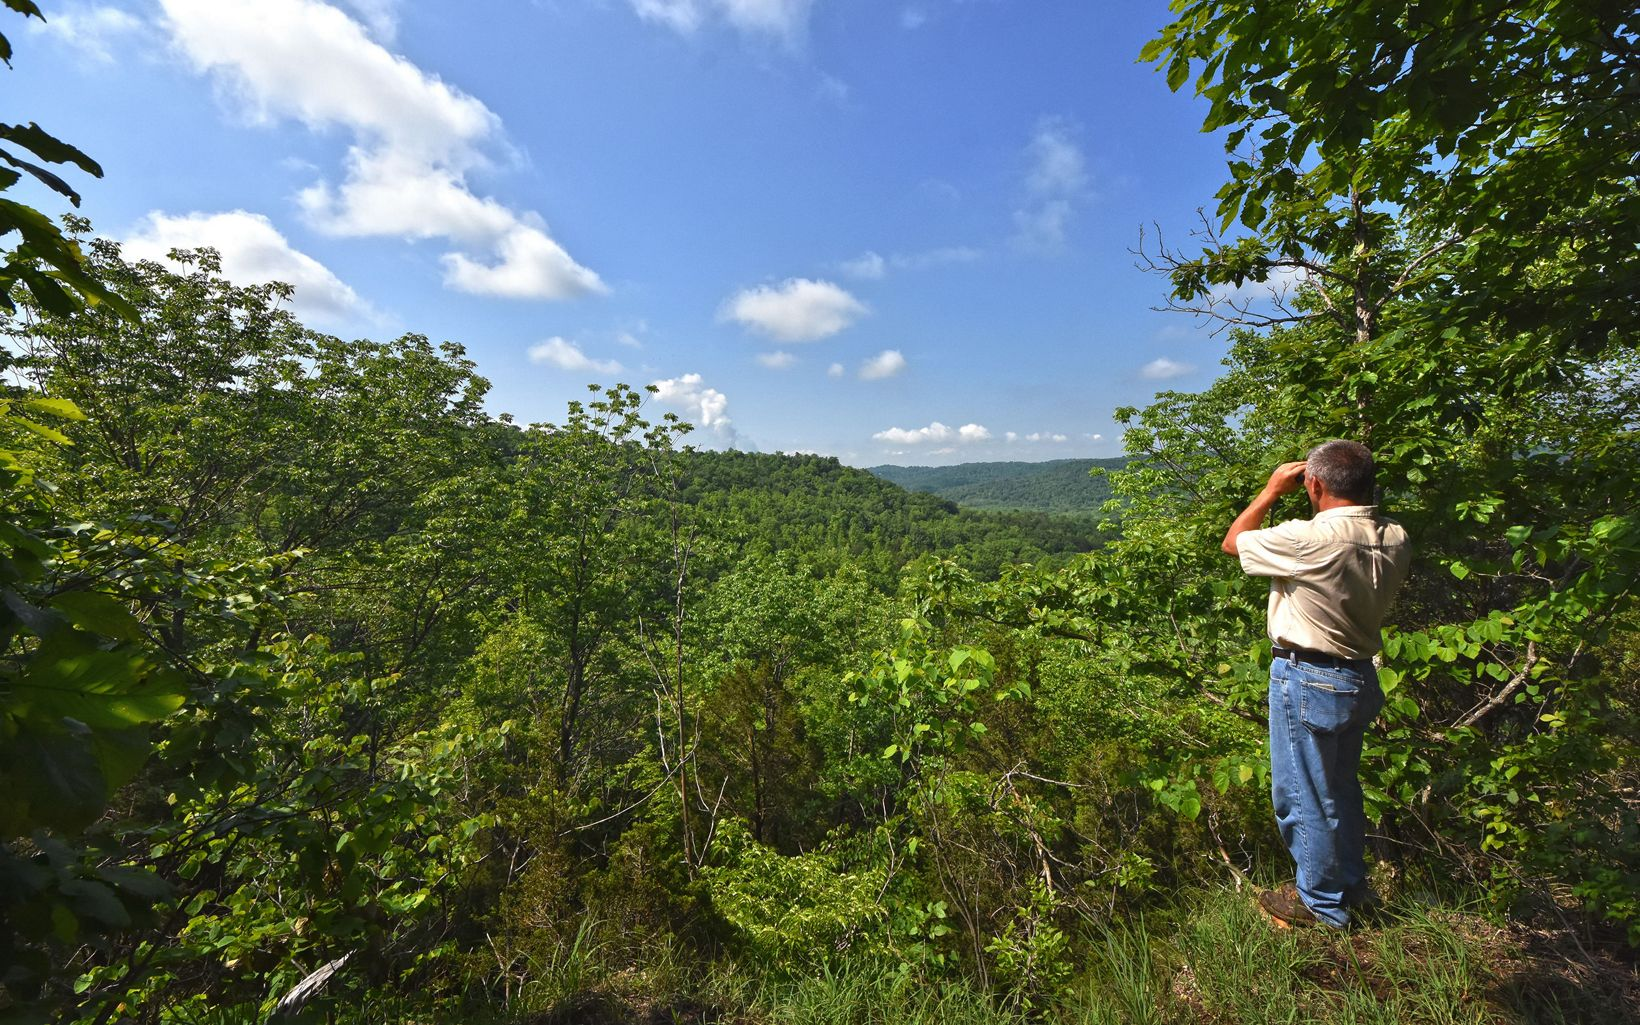 A hiker looks out through binoculars over green hills.